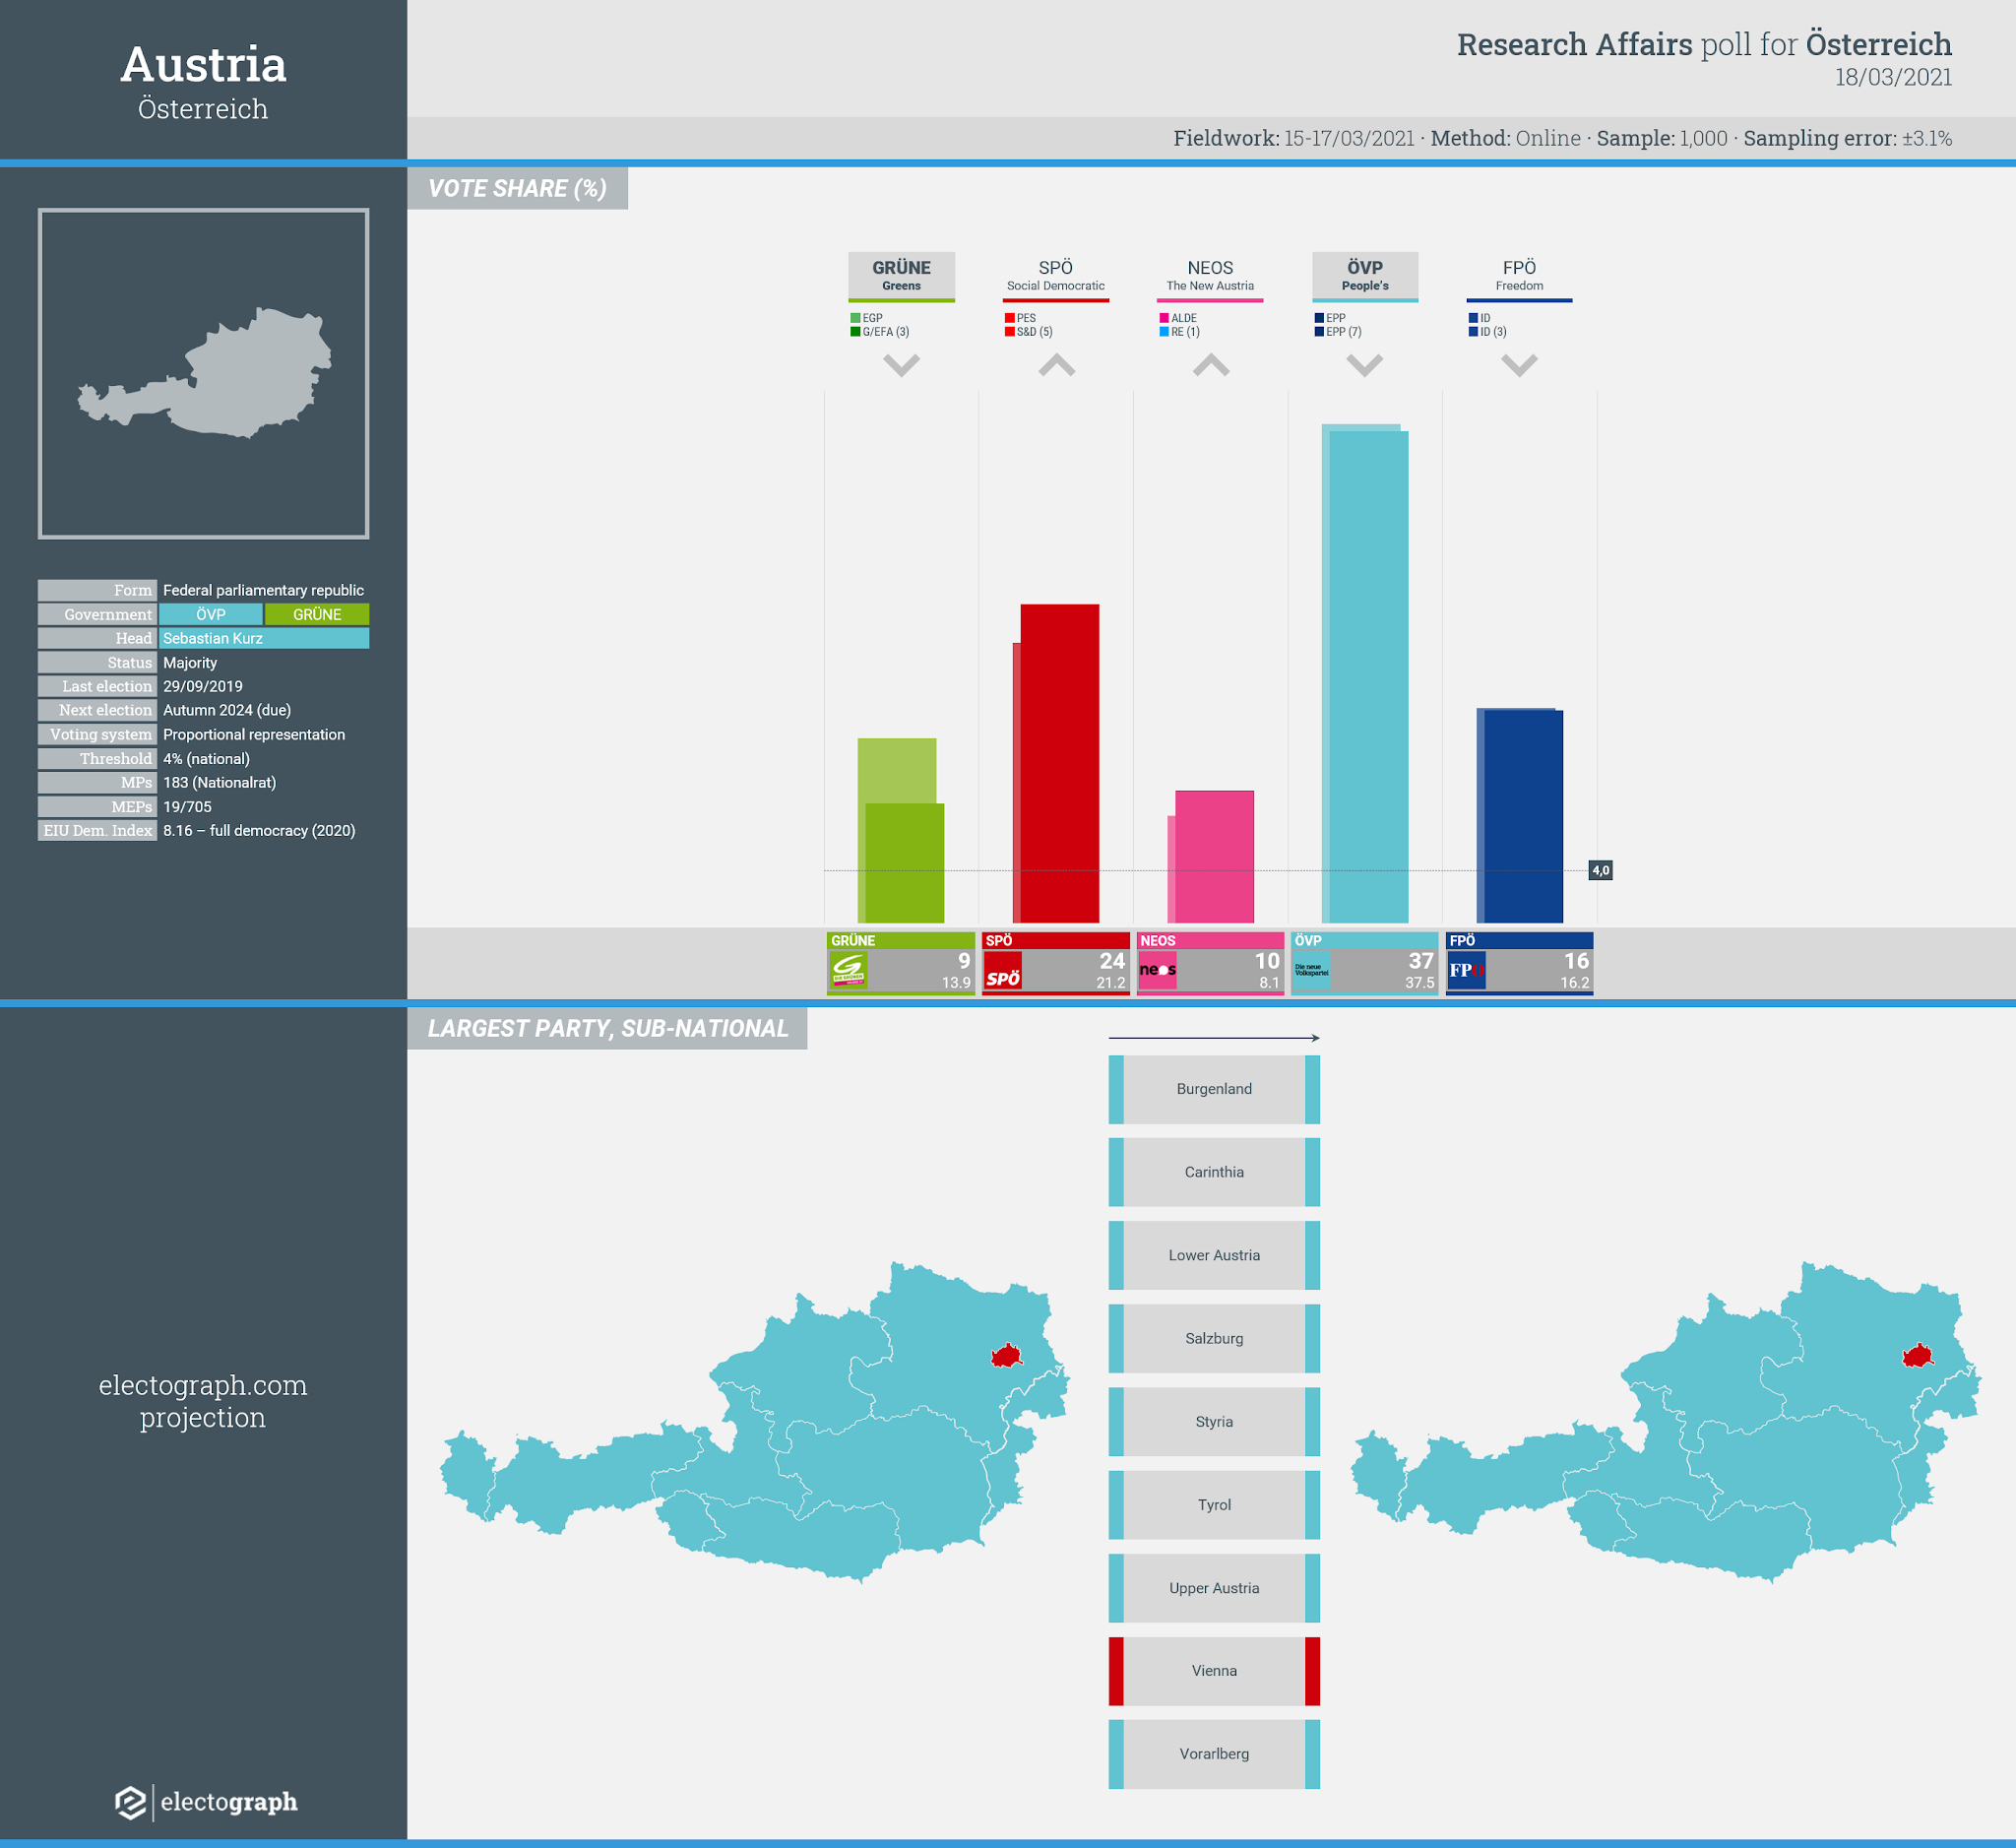 AUSTRIA: Research Affairs poll chart for Österreich, 18 March 2021